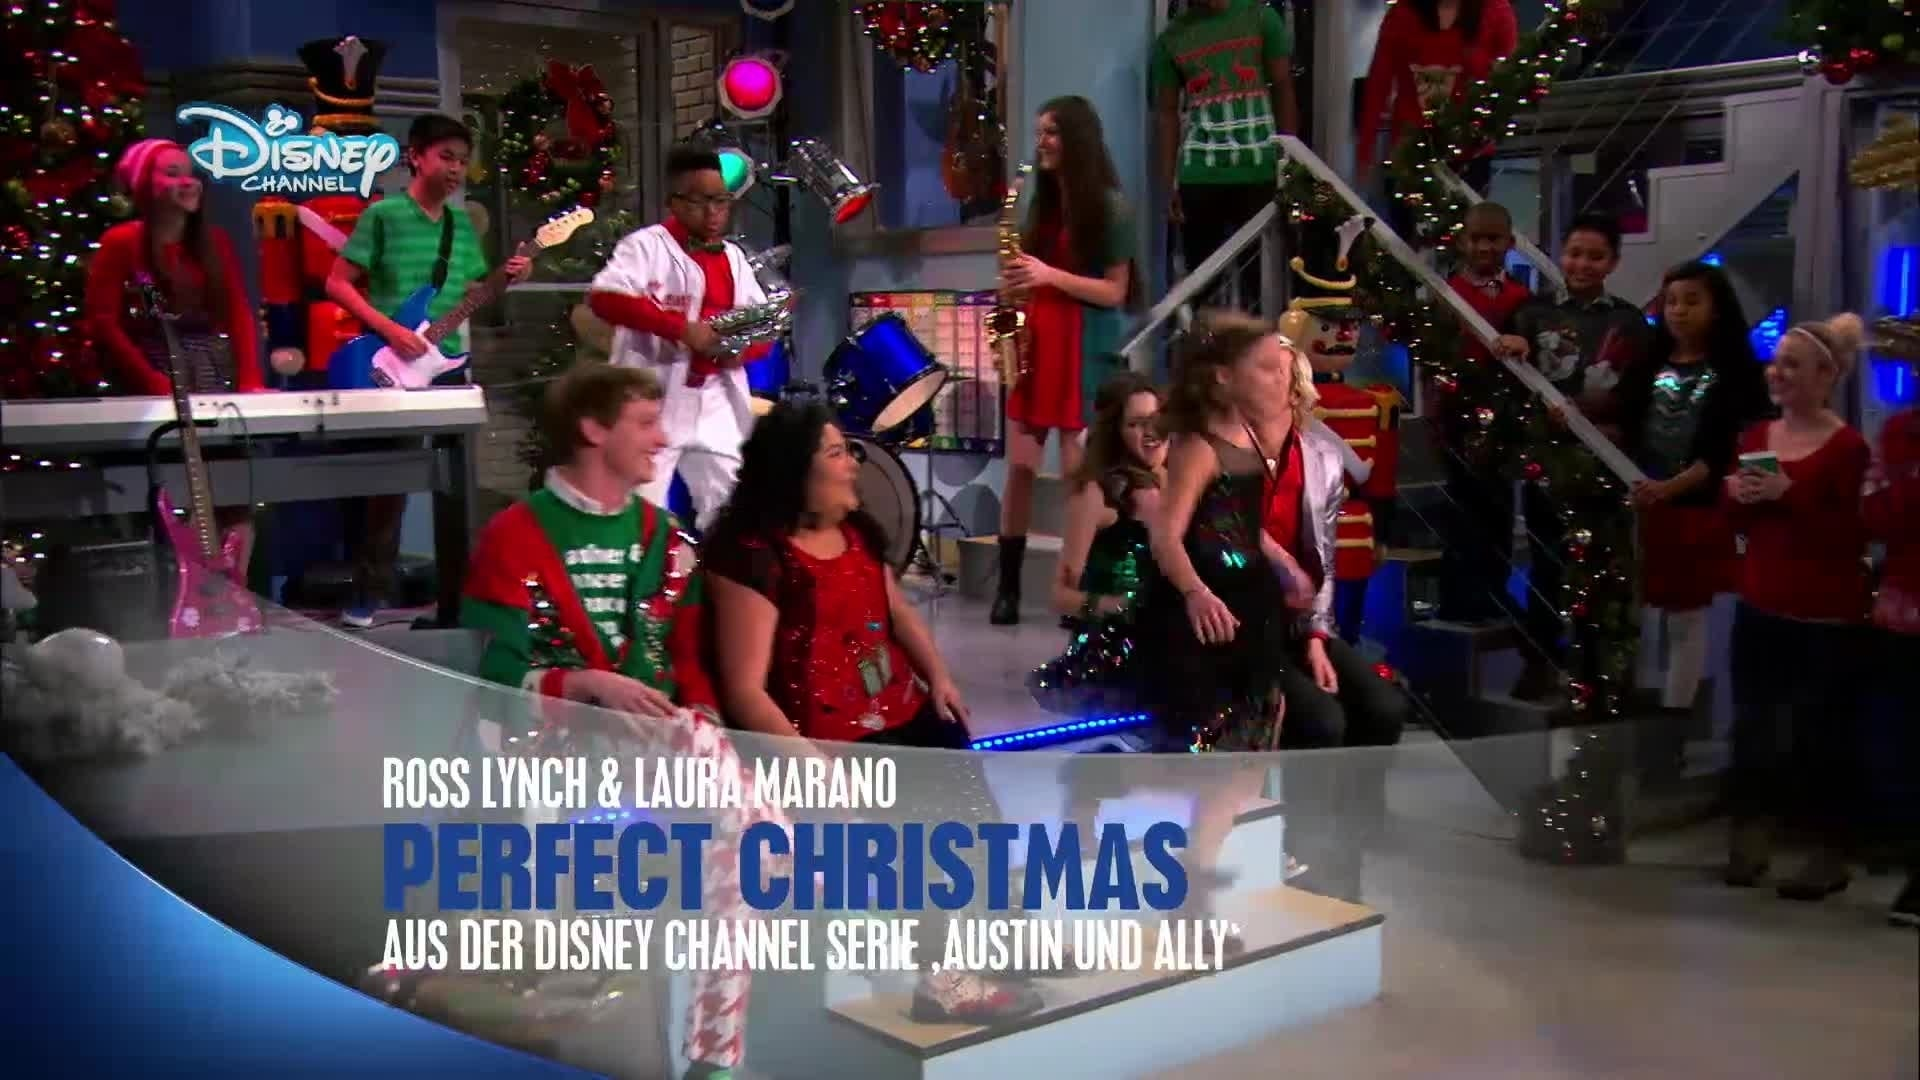 Austin & Ally - Song 'Perfect Christmas'